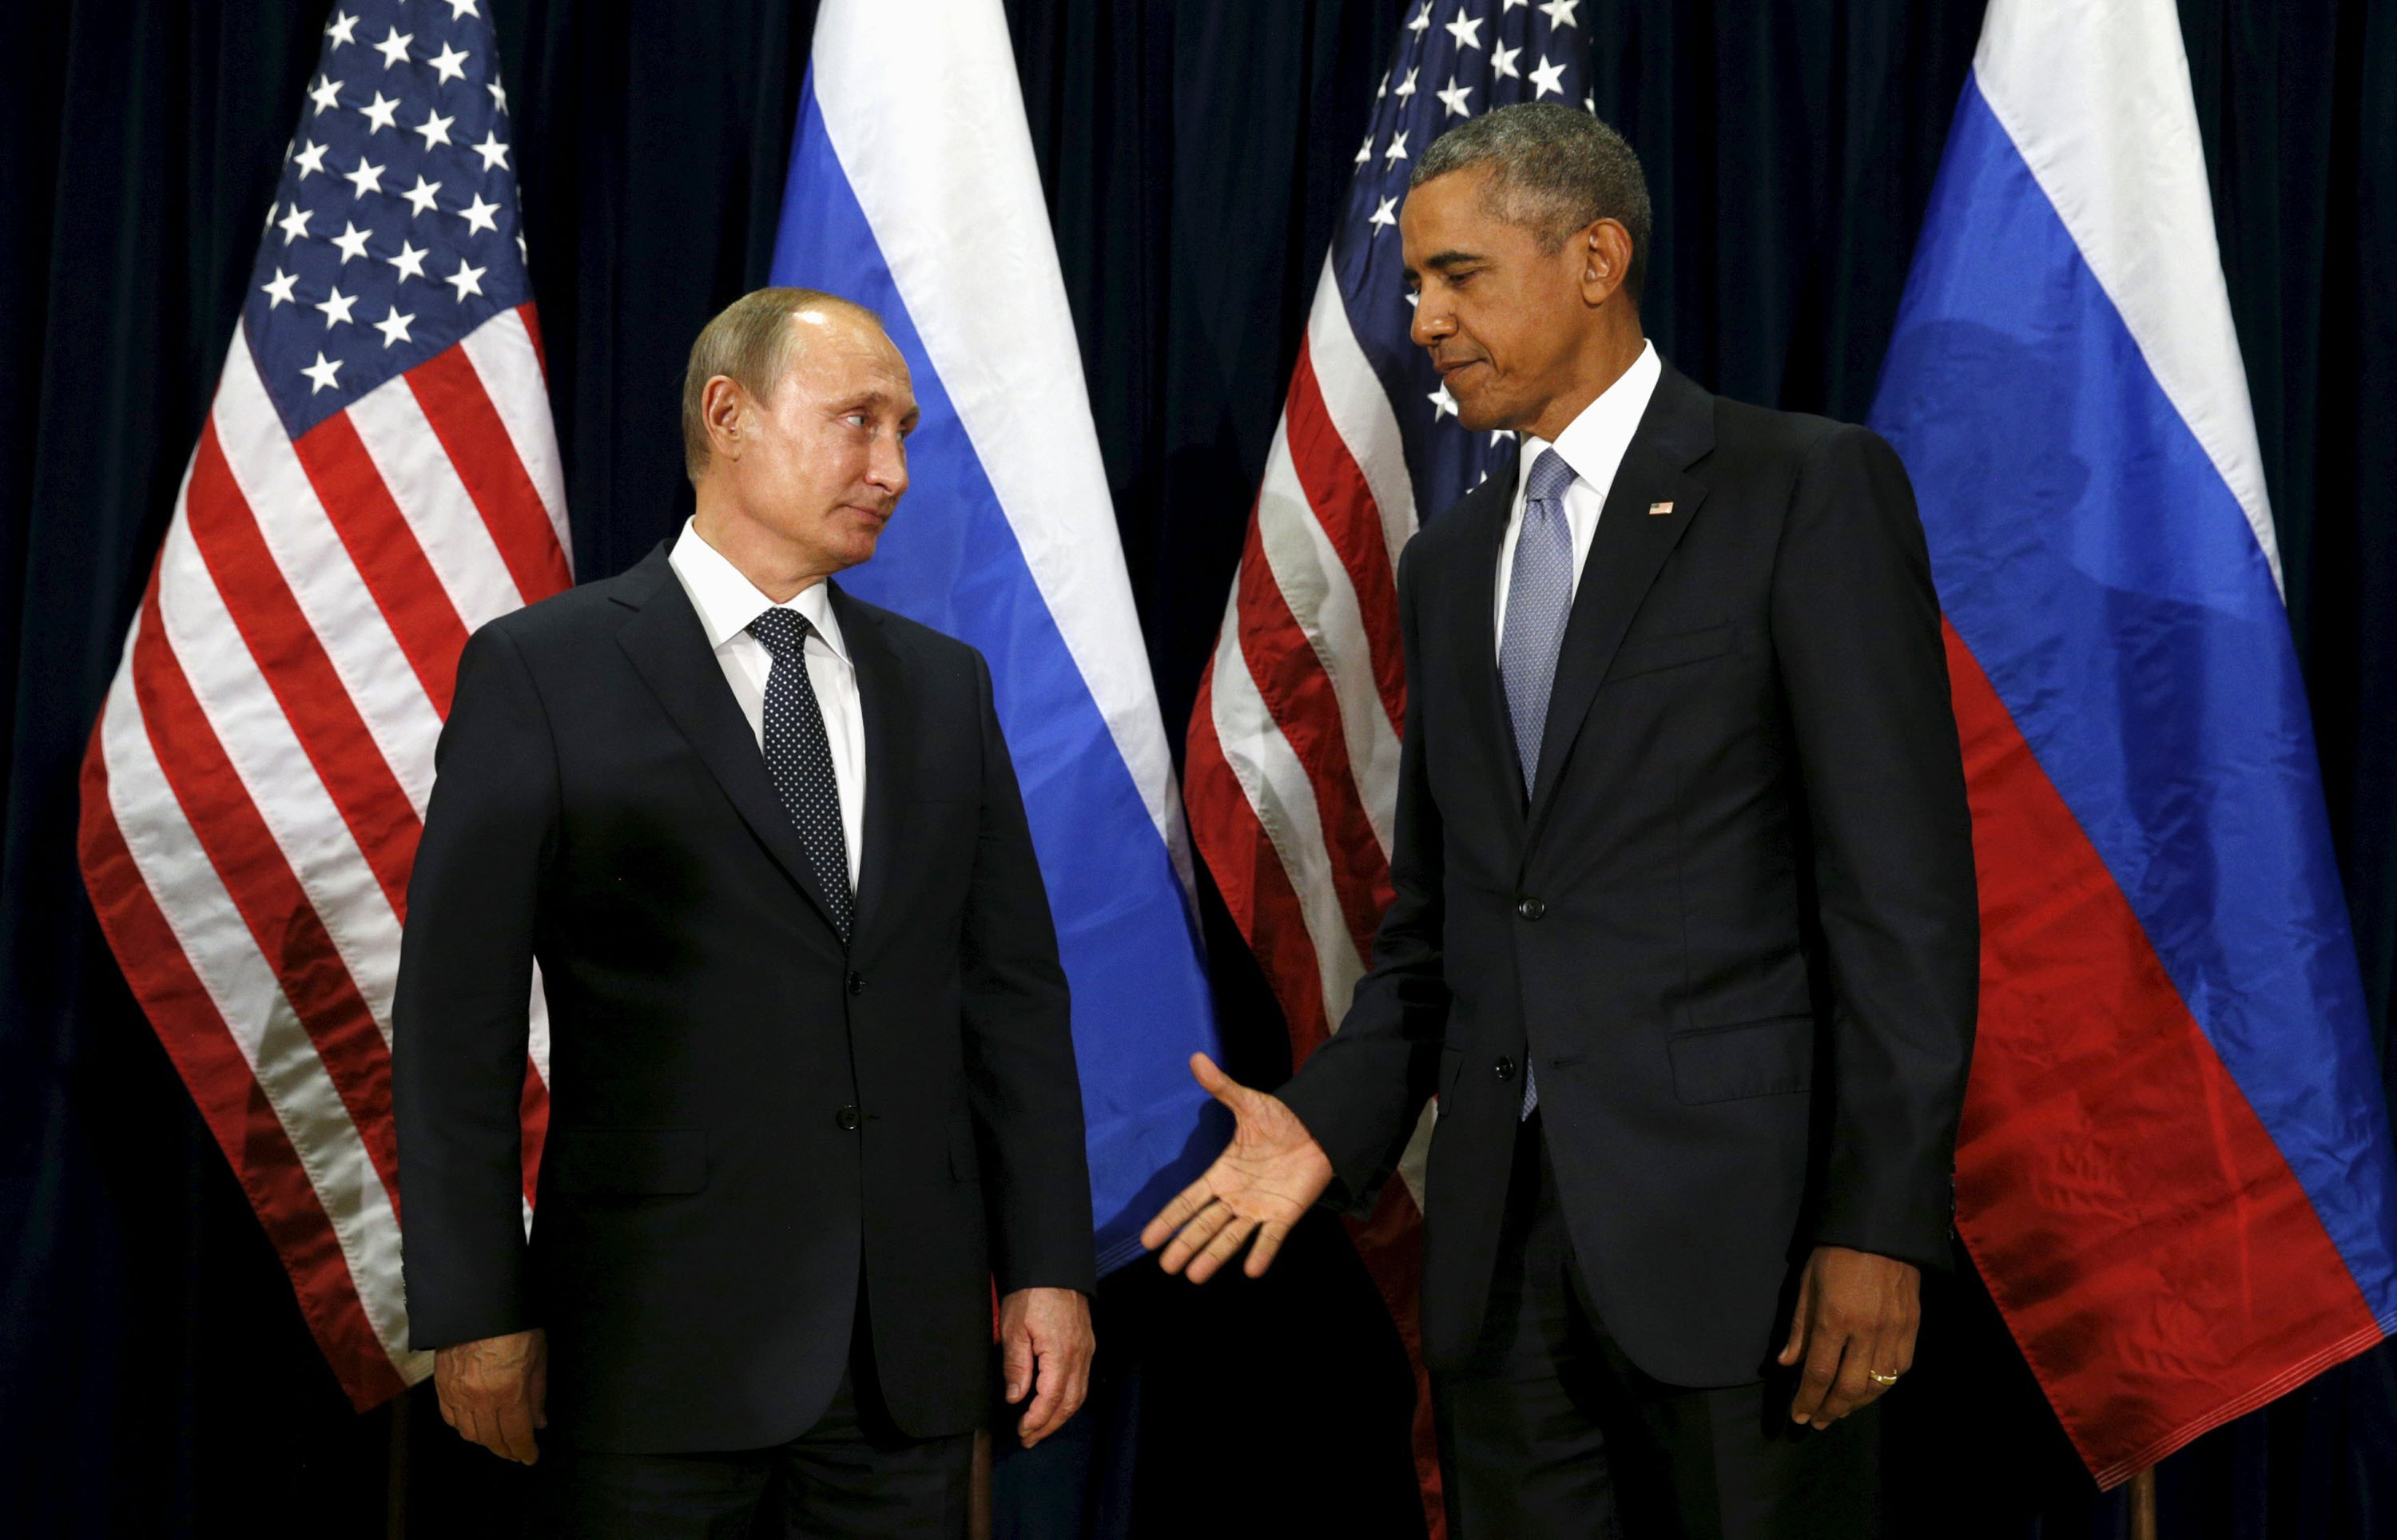 Putin and Obama discussed Syria at the U.N., meeting formally for the first time since 2013.